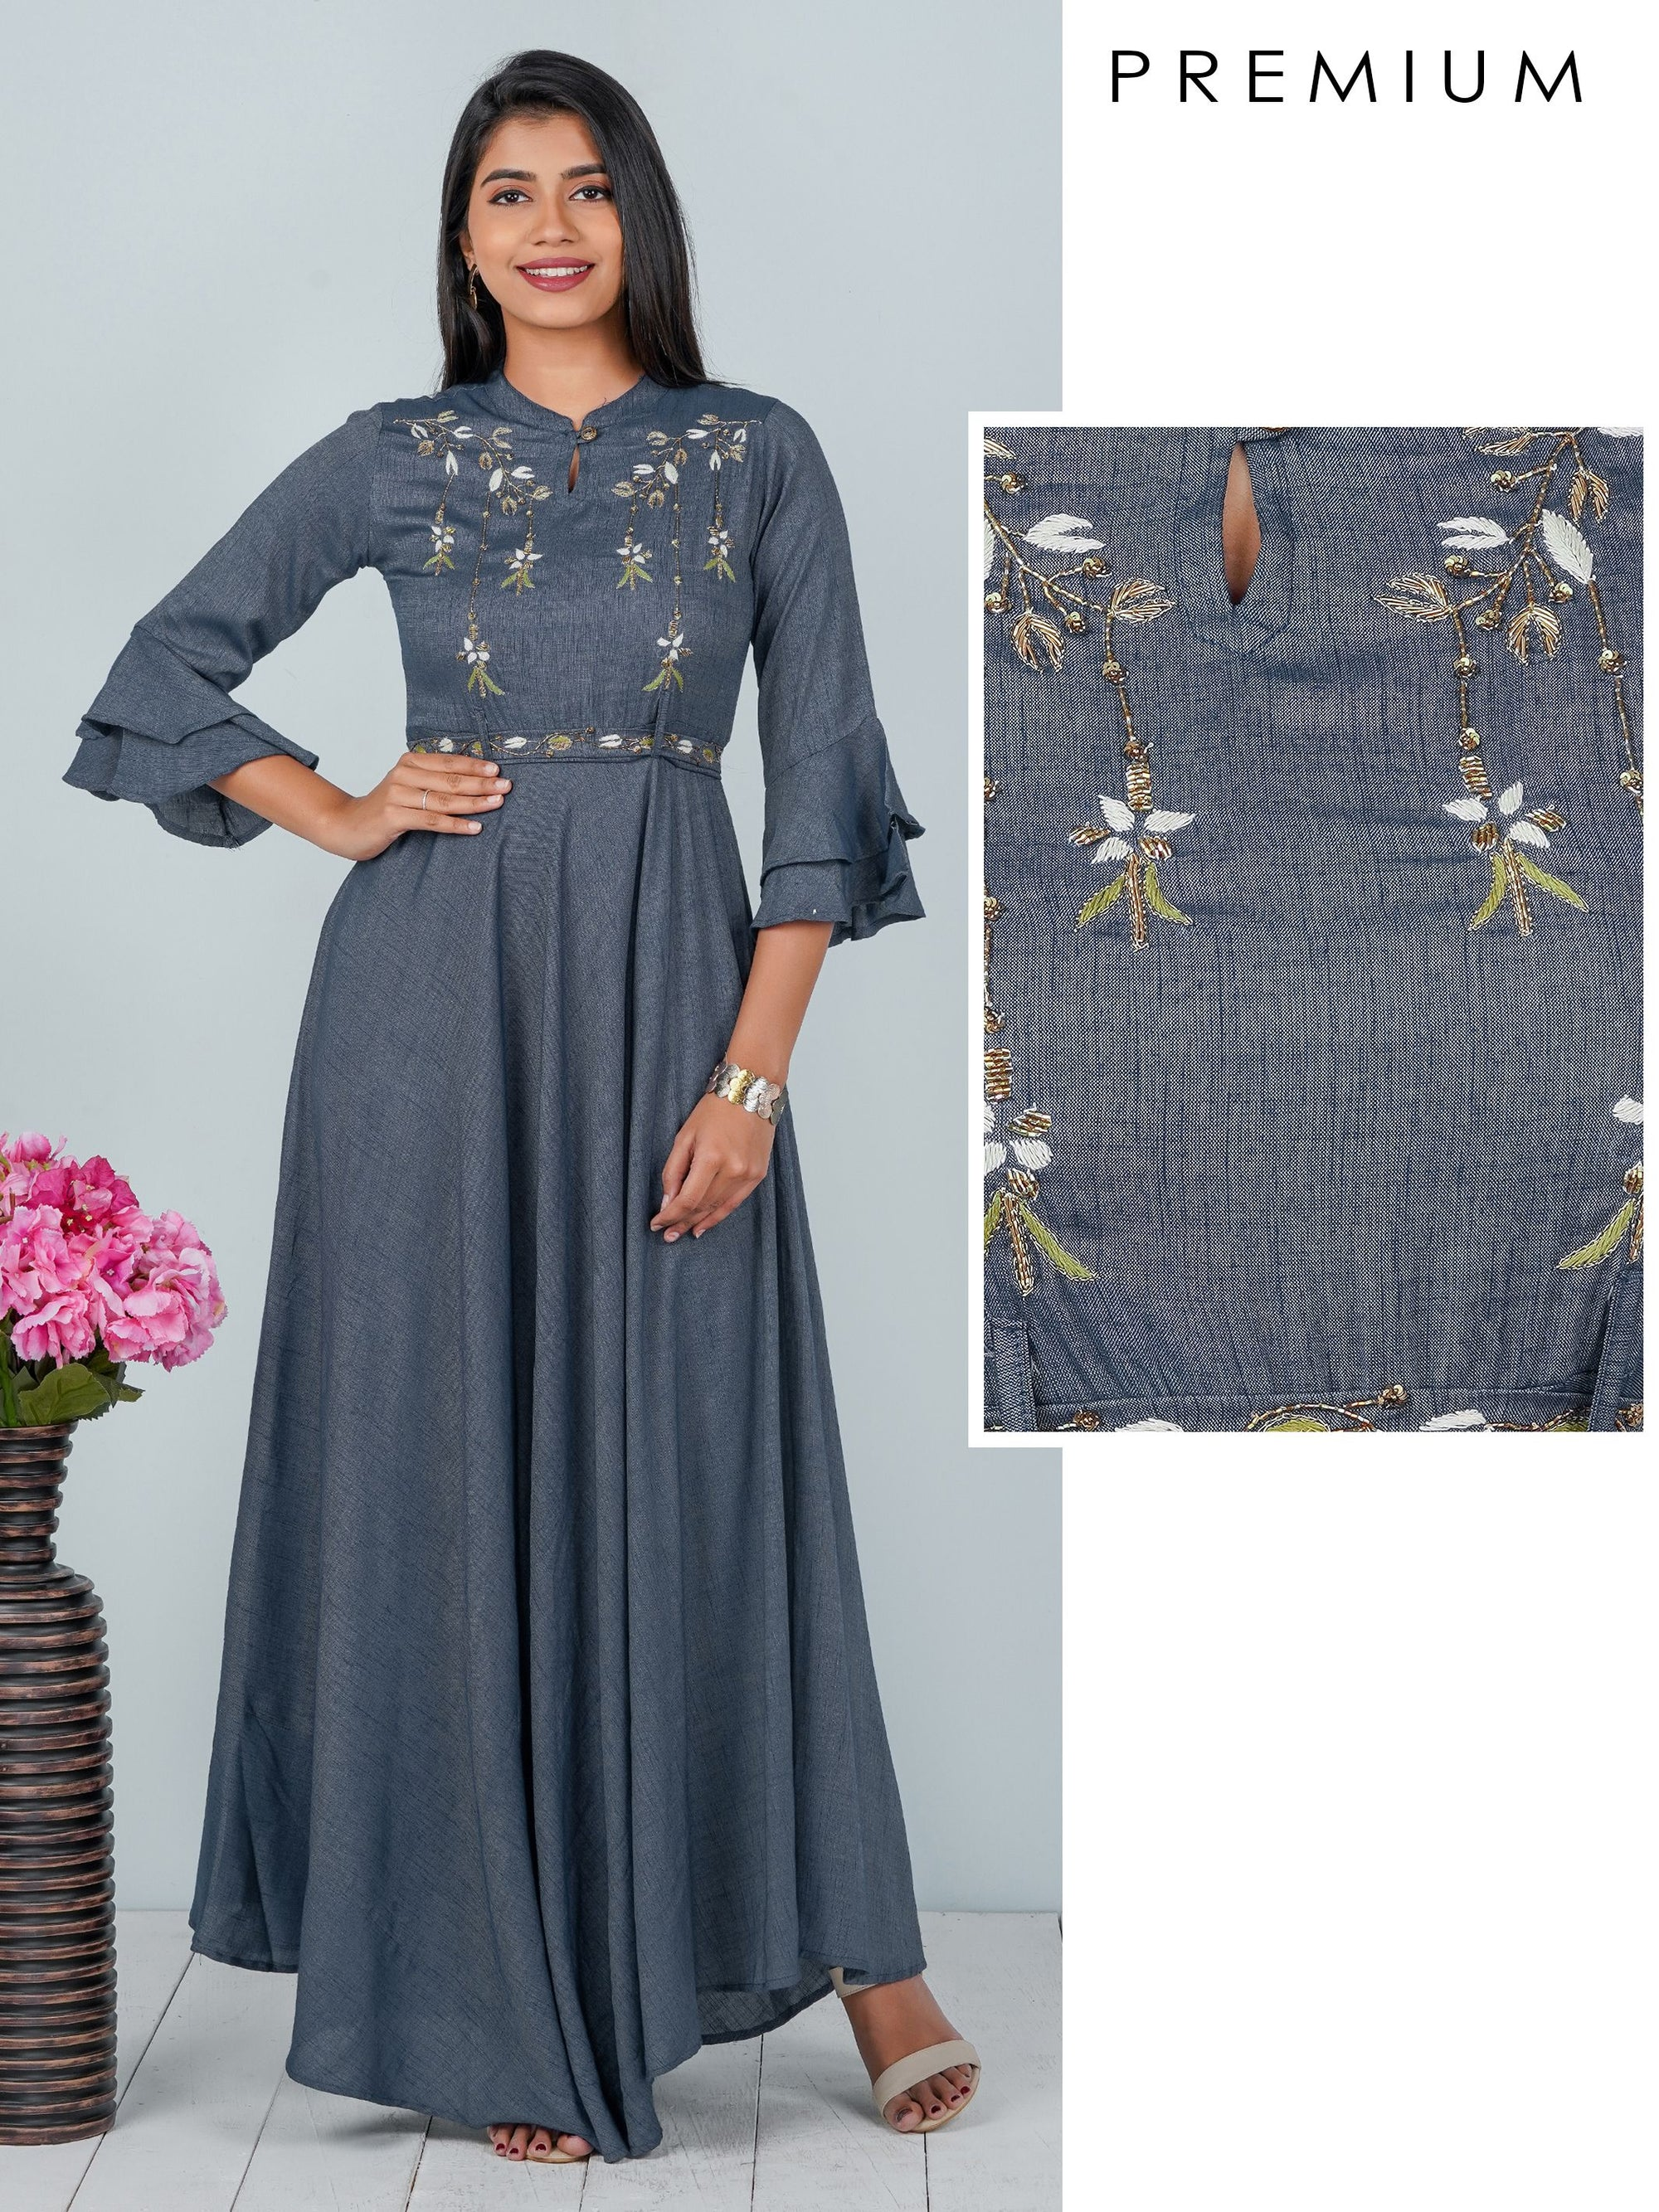 Epitome of Cutdana Embroidery, Bias Cut Denim Maxi with Belt